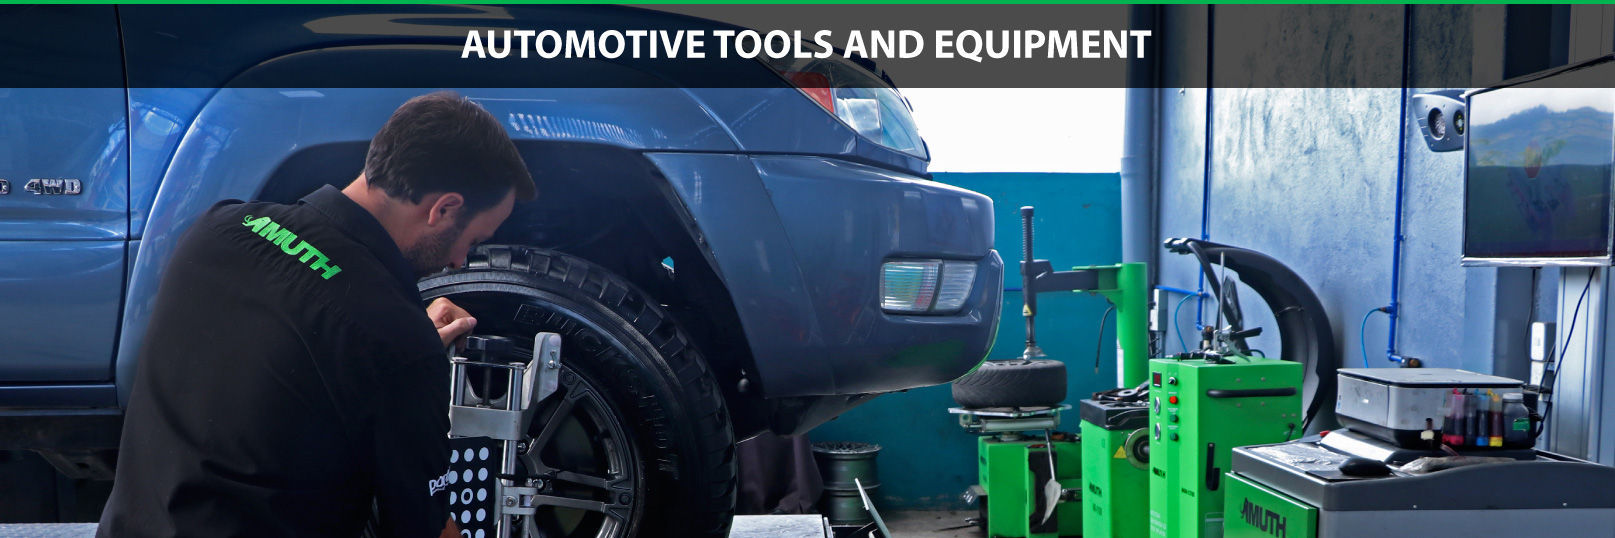 Automotive tools and equipment